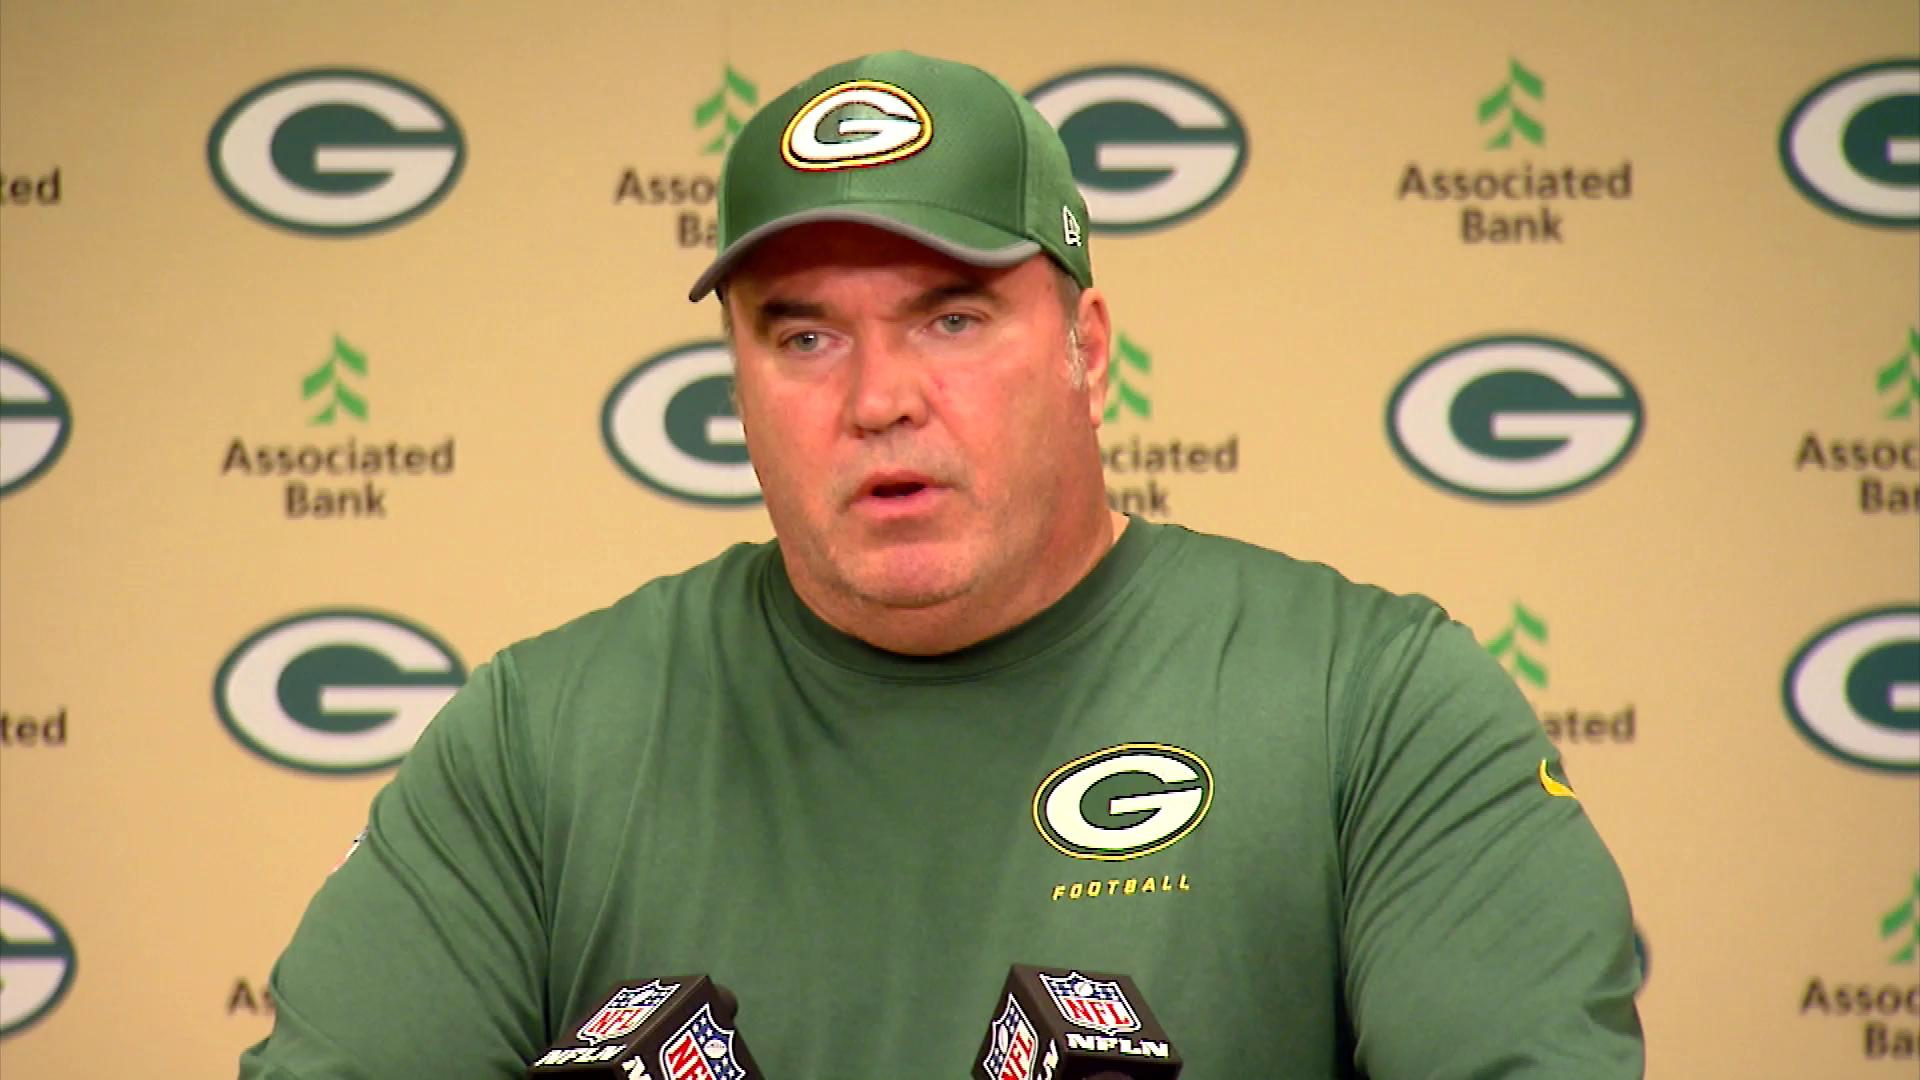 Green Bay Packers head coach Mike McCarthy discusses players' request to have fans lock arms during the playing of the national anthem before the Sept. 28, 2017 game at Lambeau Field. (WLUK)Thumbnail